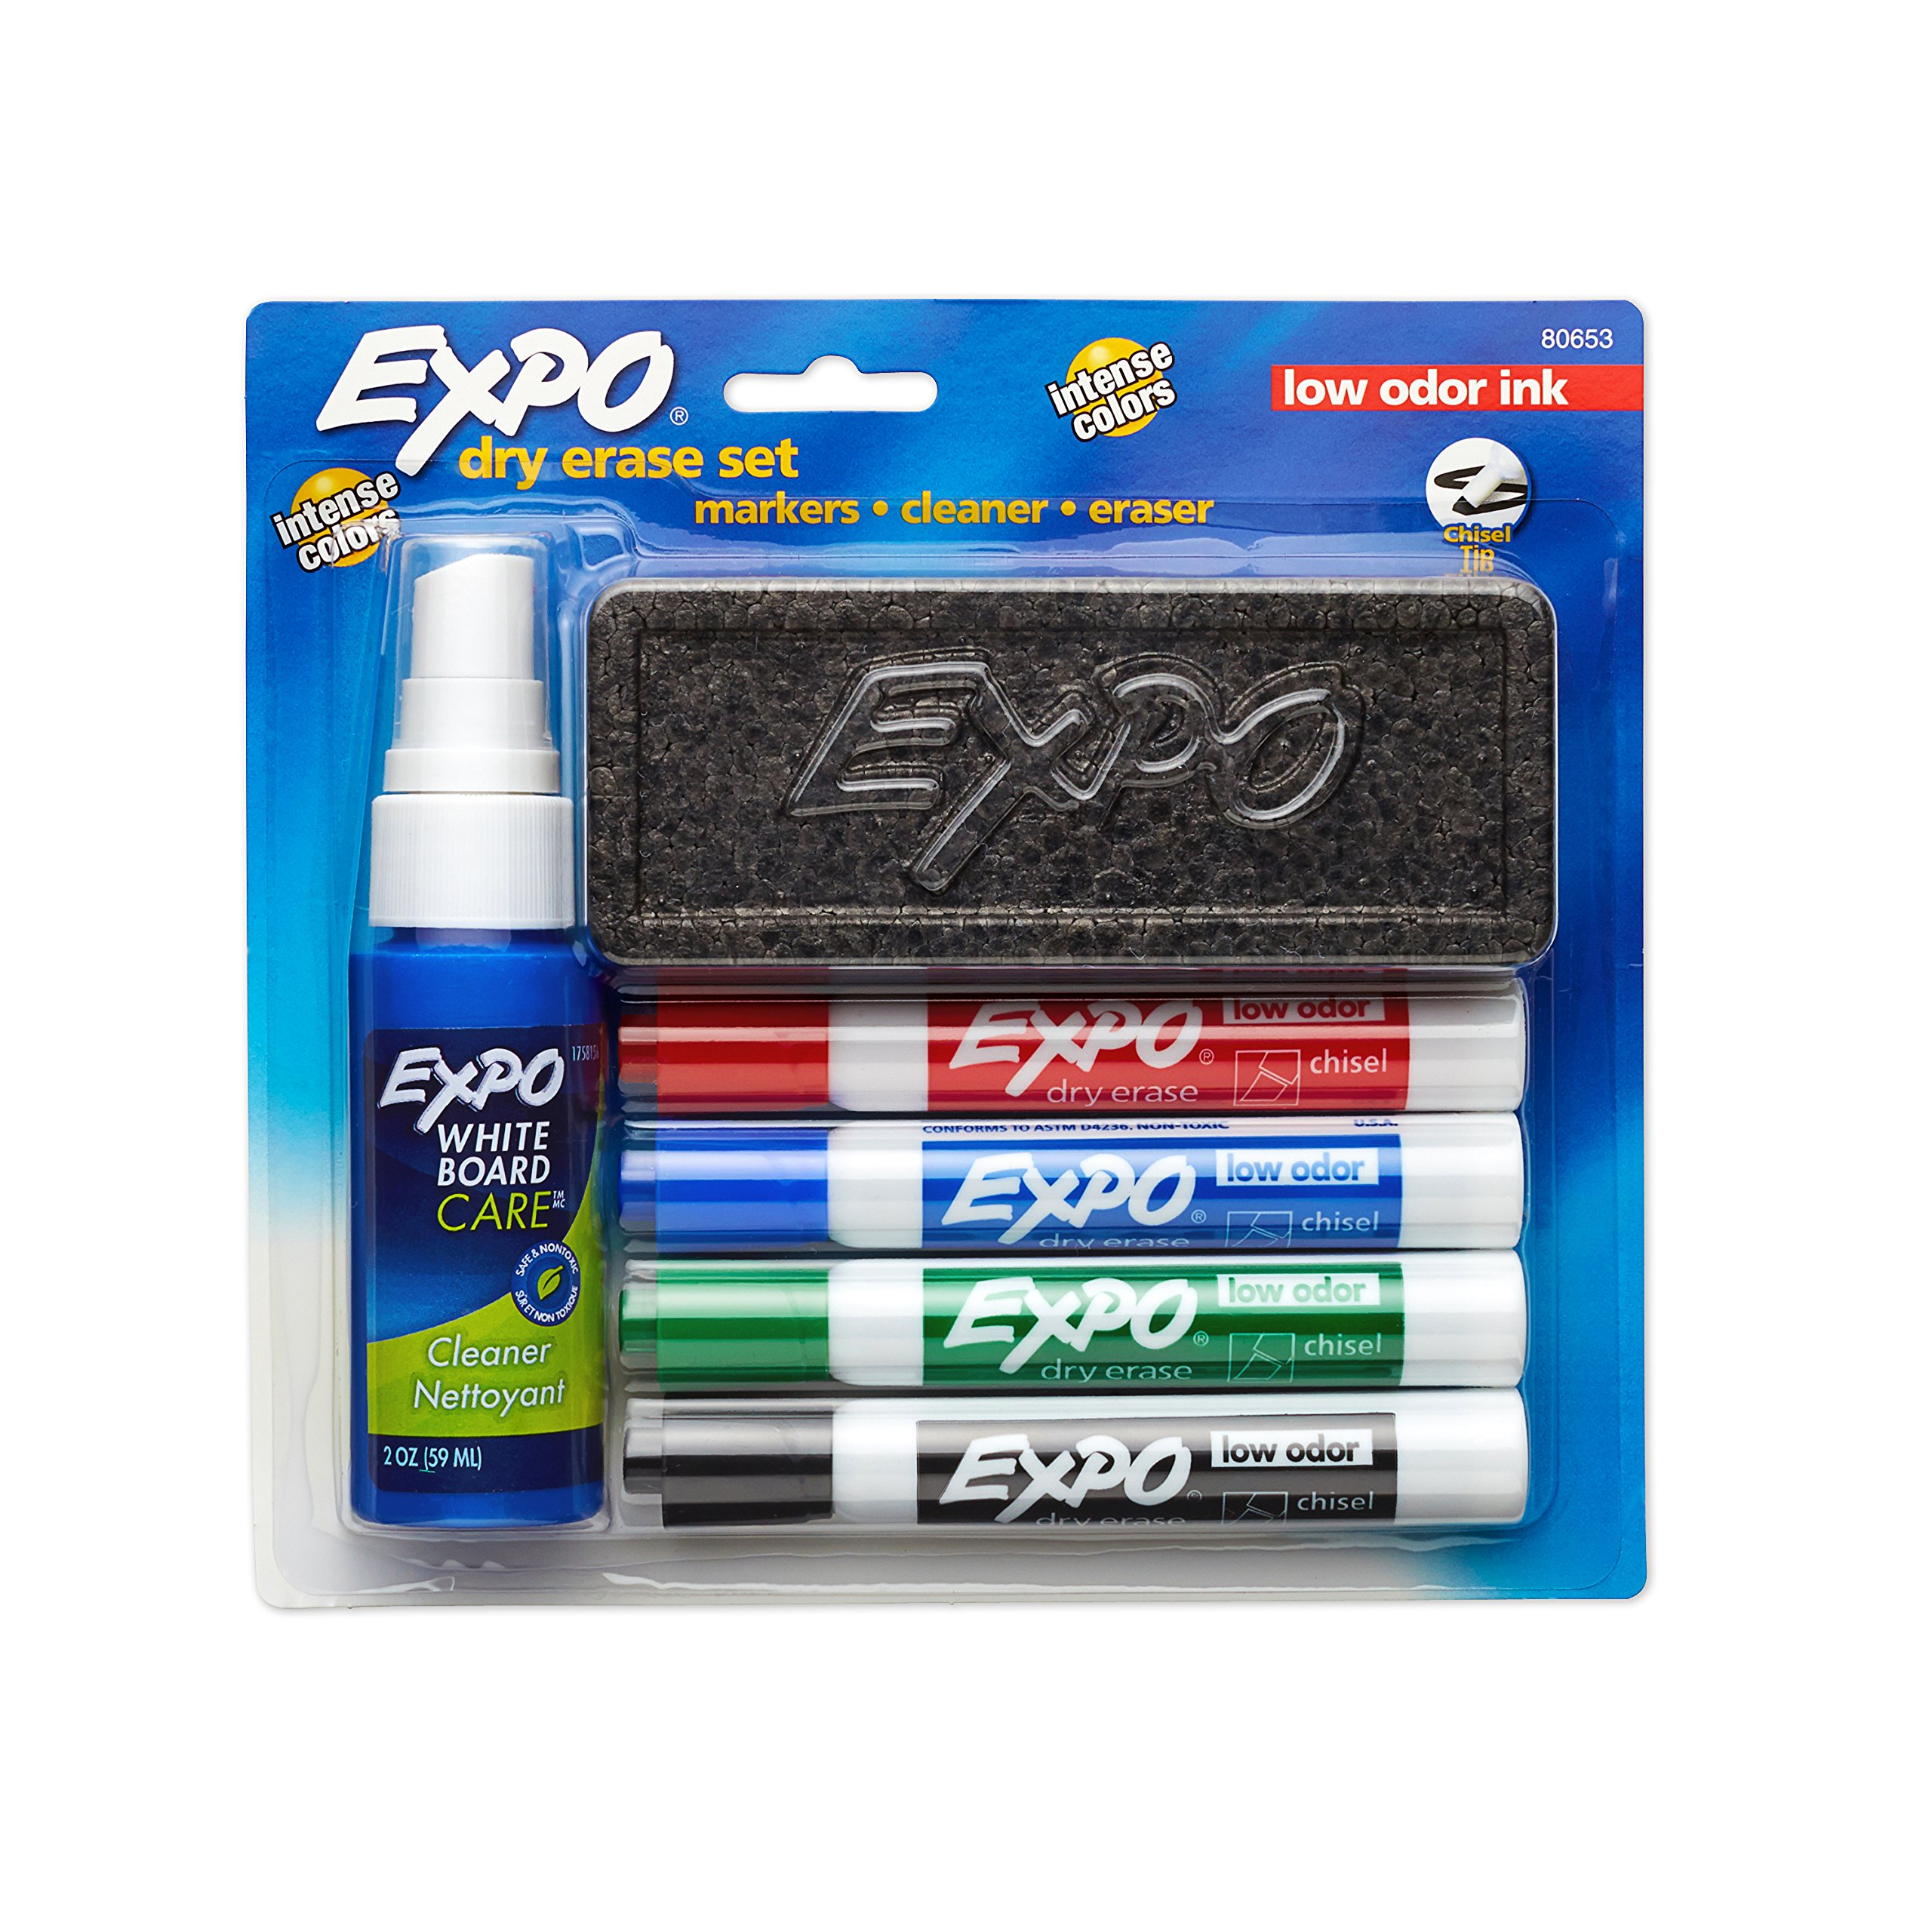 EXPO Dry Erase Marker Starter Set, Chisel Tip, Assorted Colors, 6 Piece by Expo (Image #2)